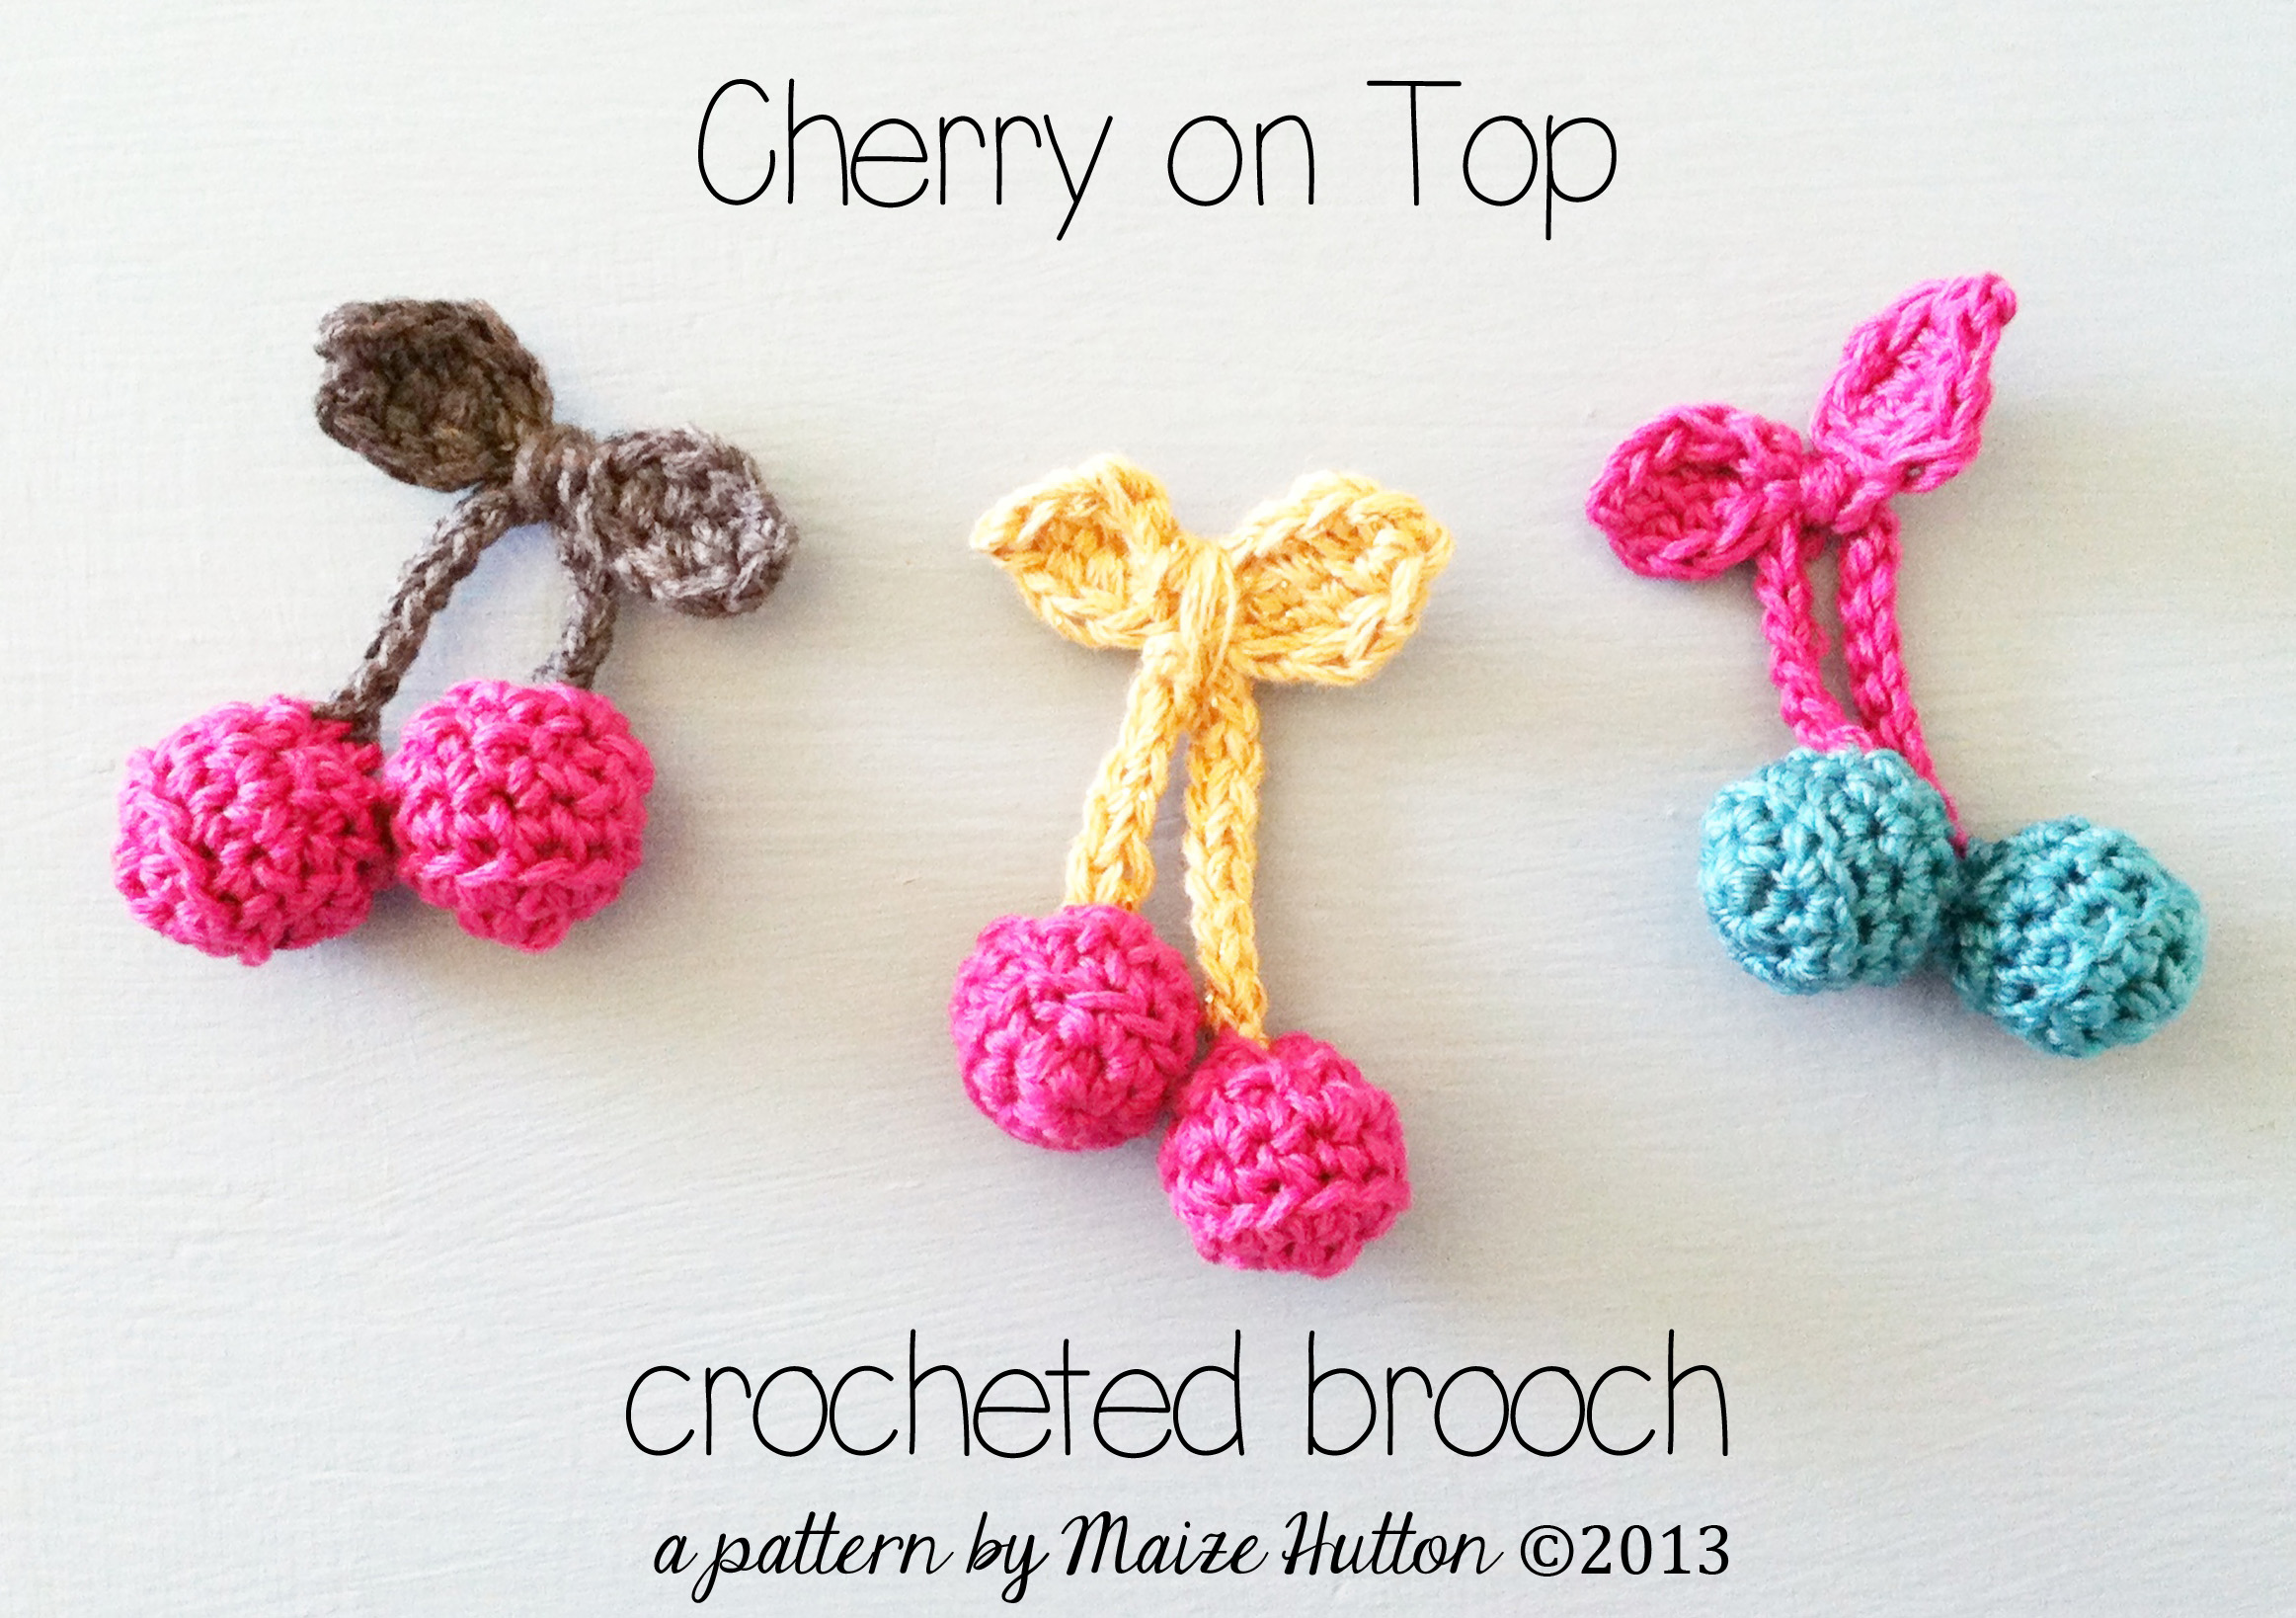 Cherry on Top Crocheted Brooch